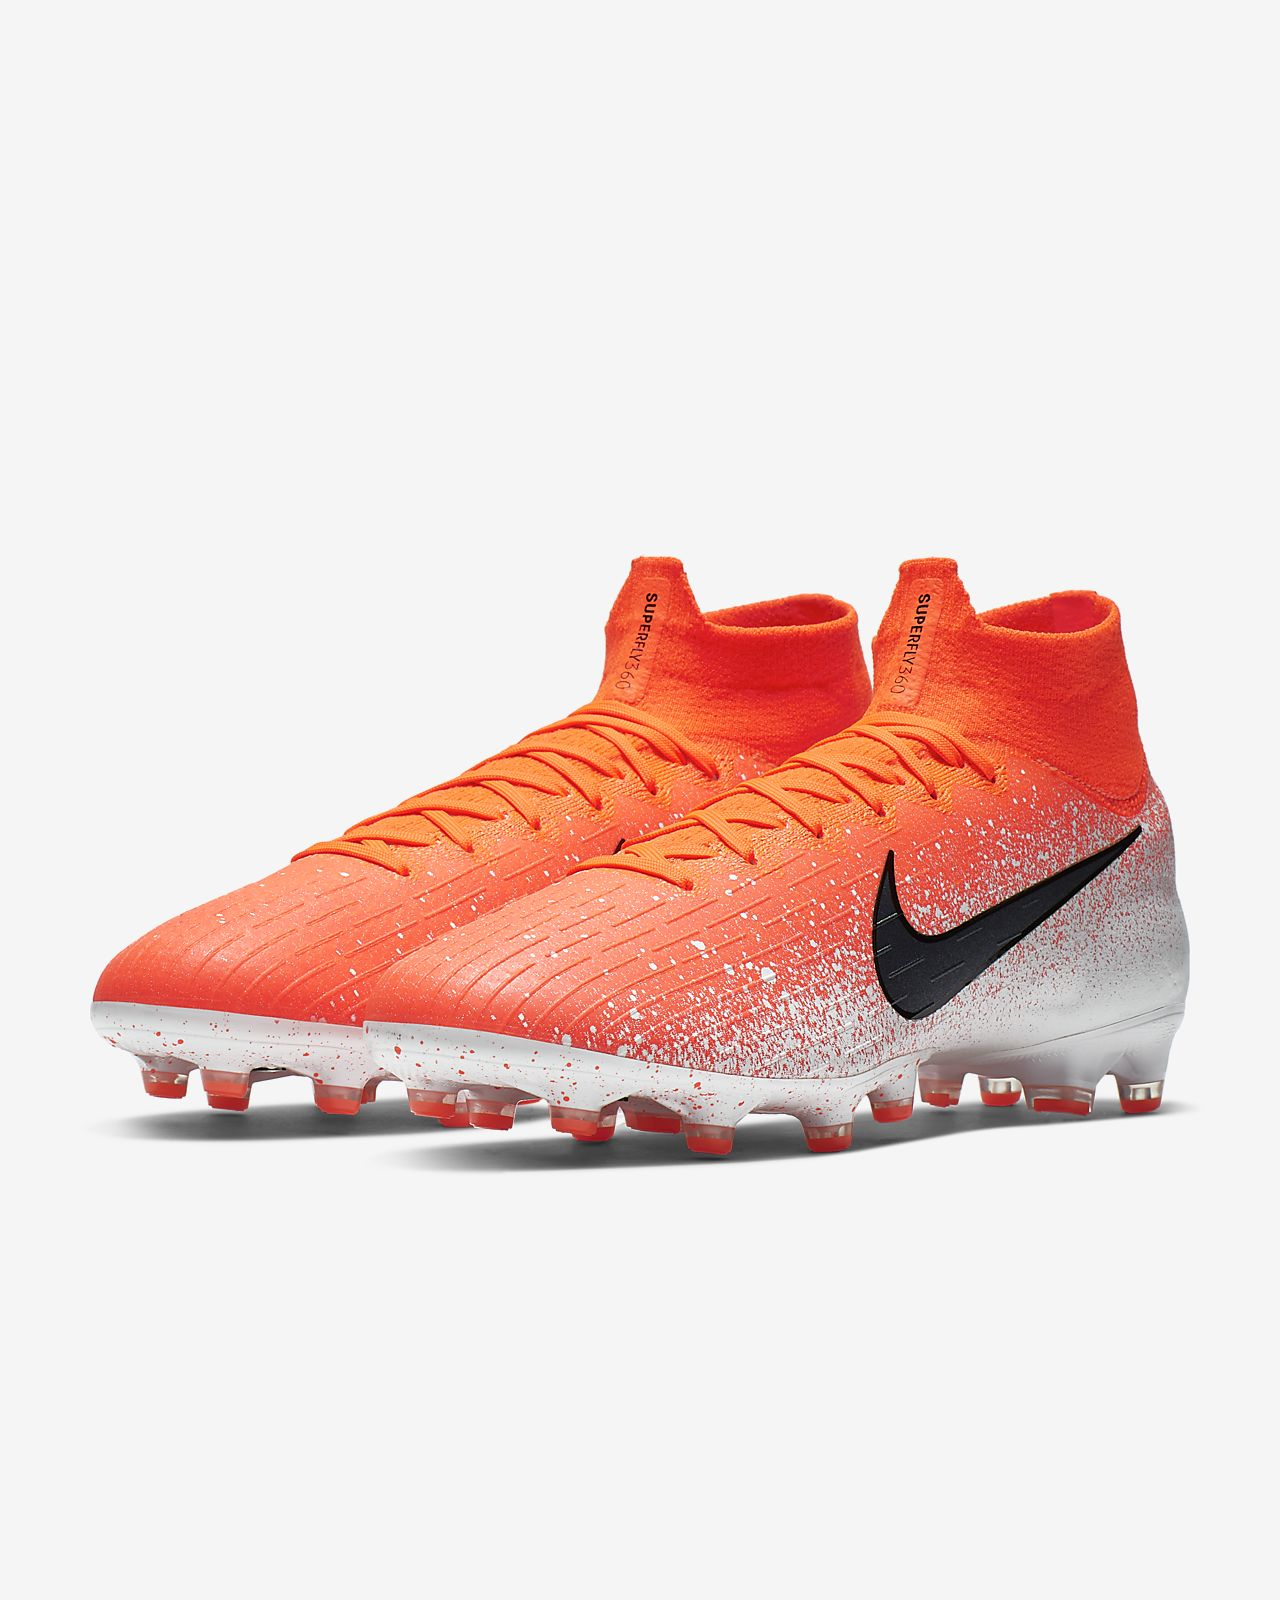 new product 26a6d 507b5 Nike Mercurial Superfly 360 Elite AG-PRO Artificial-Grass Football Boot